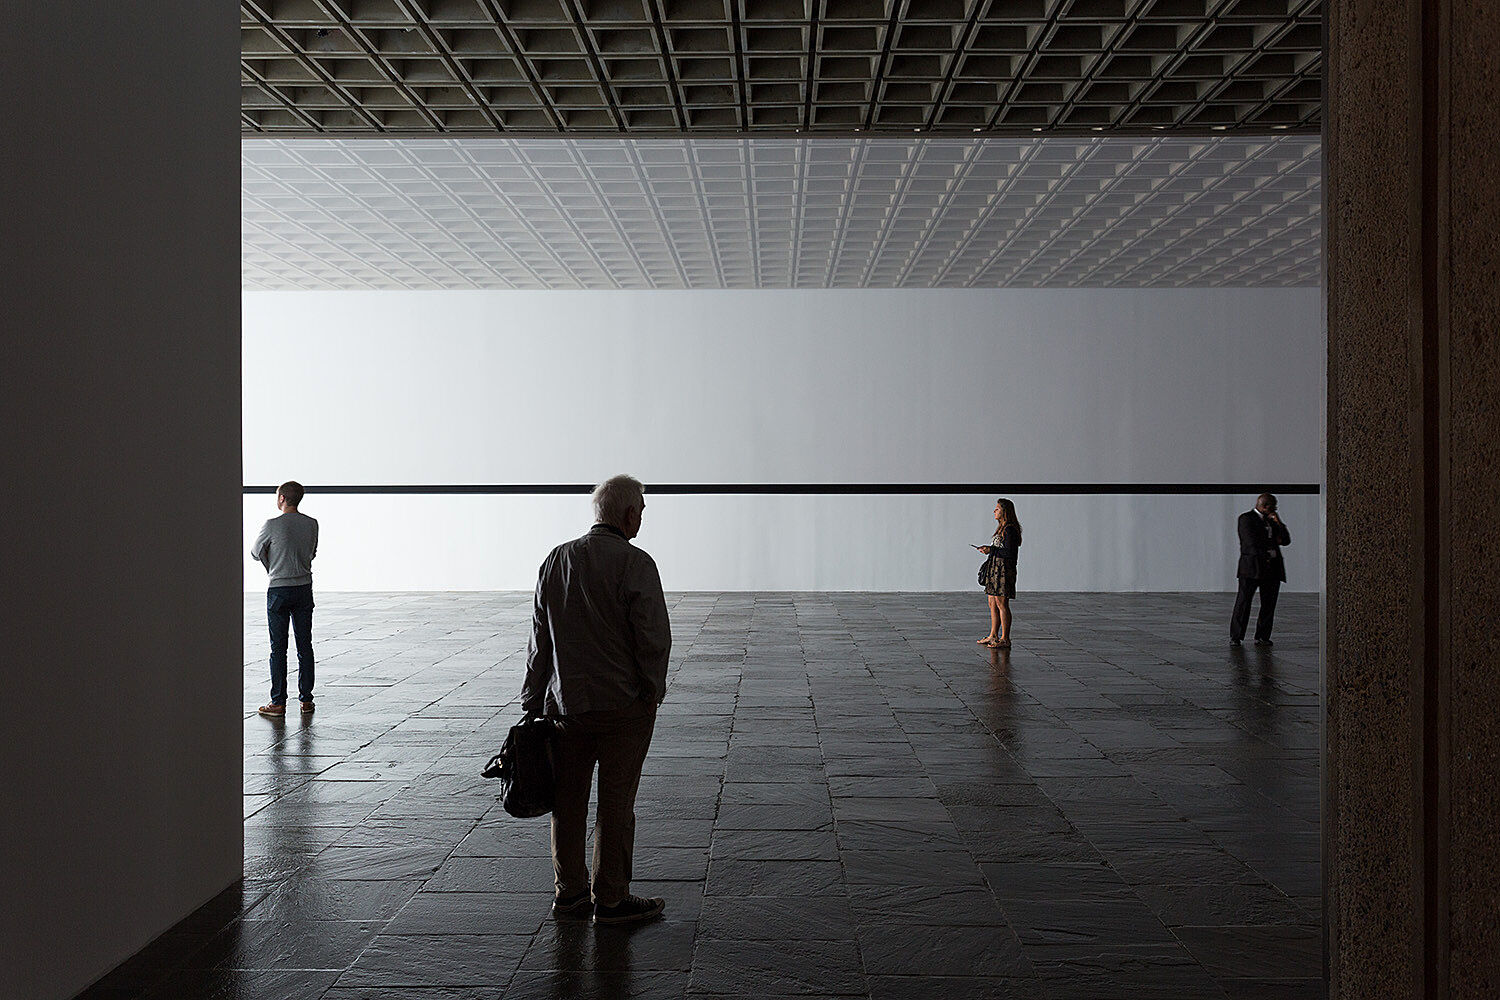 The back of a man and three other people standing in the gallery.